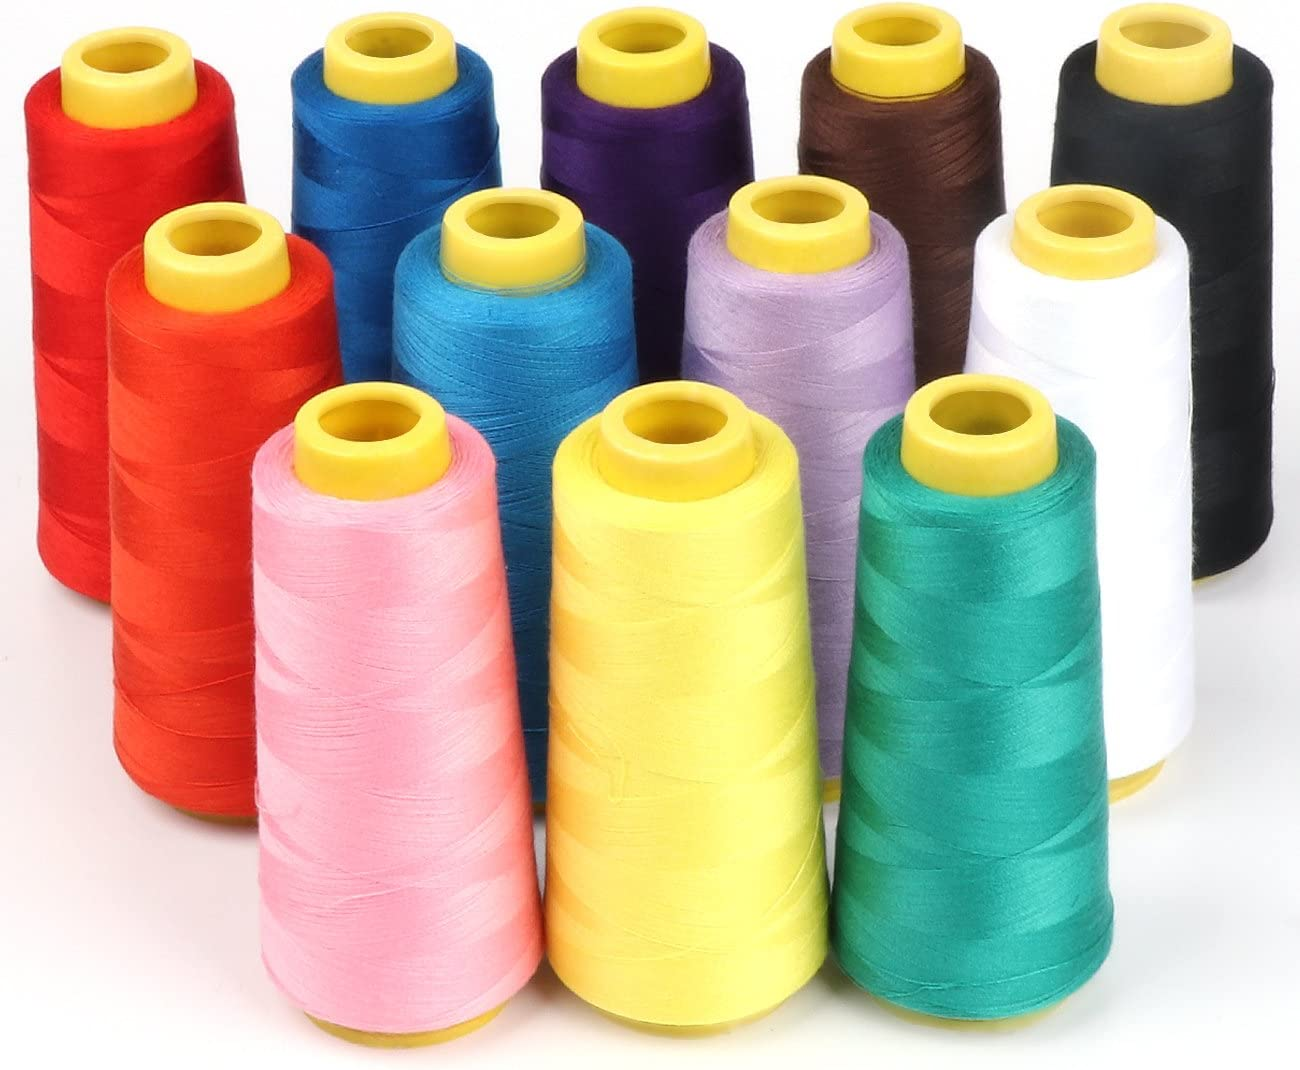 3000 Yards Each of High Tensile Polyester Thread Spools for Sewing Black Household Color Polyester Sewing Thread Pagoda Thread LLXIAO 4-Pack Sewing Thread Cones